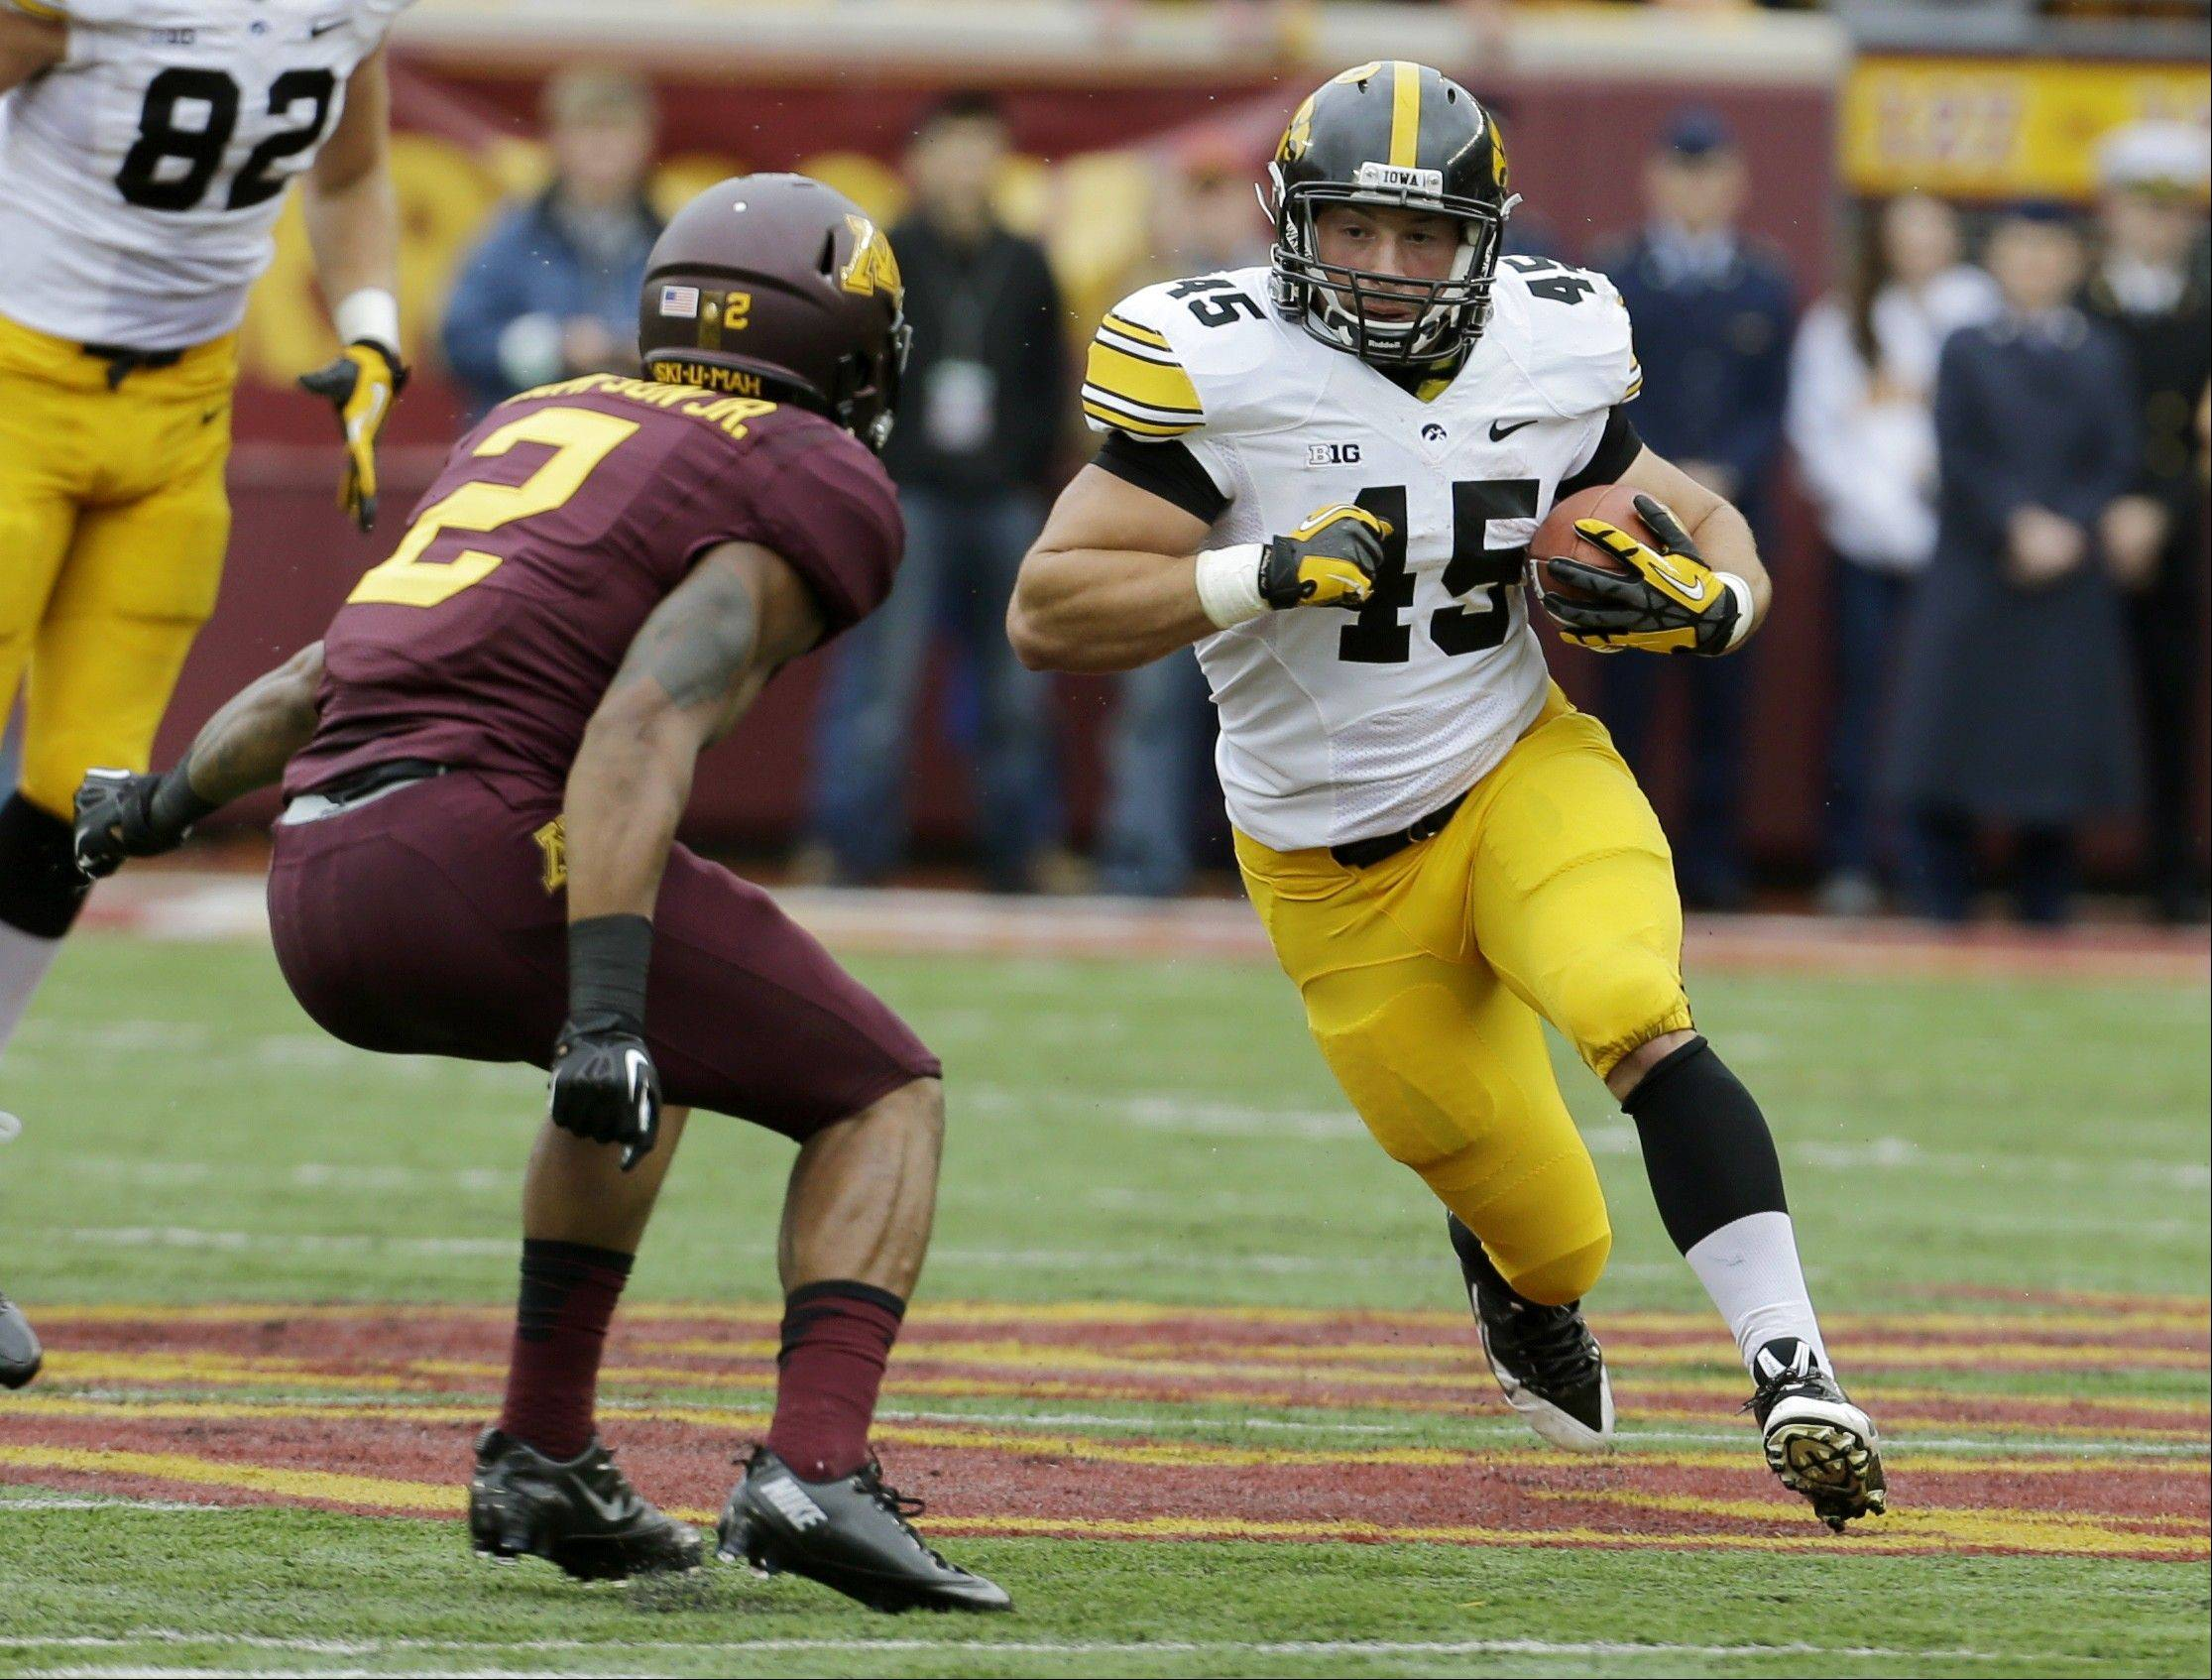 Iowa Hawkeyes fullback Mark Weisman, a Stevenson grad, carries the ball during the first quarter of Saturday's game against Minnesota in Minneapolis.